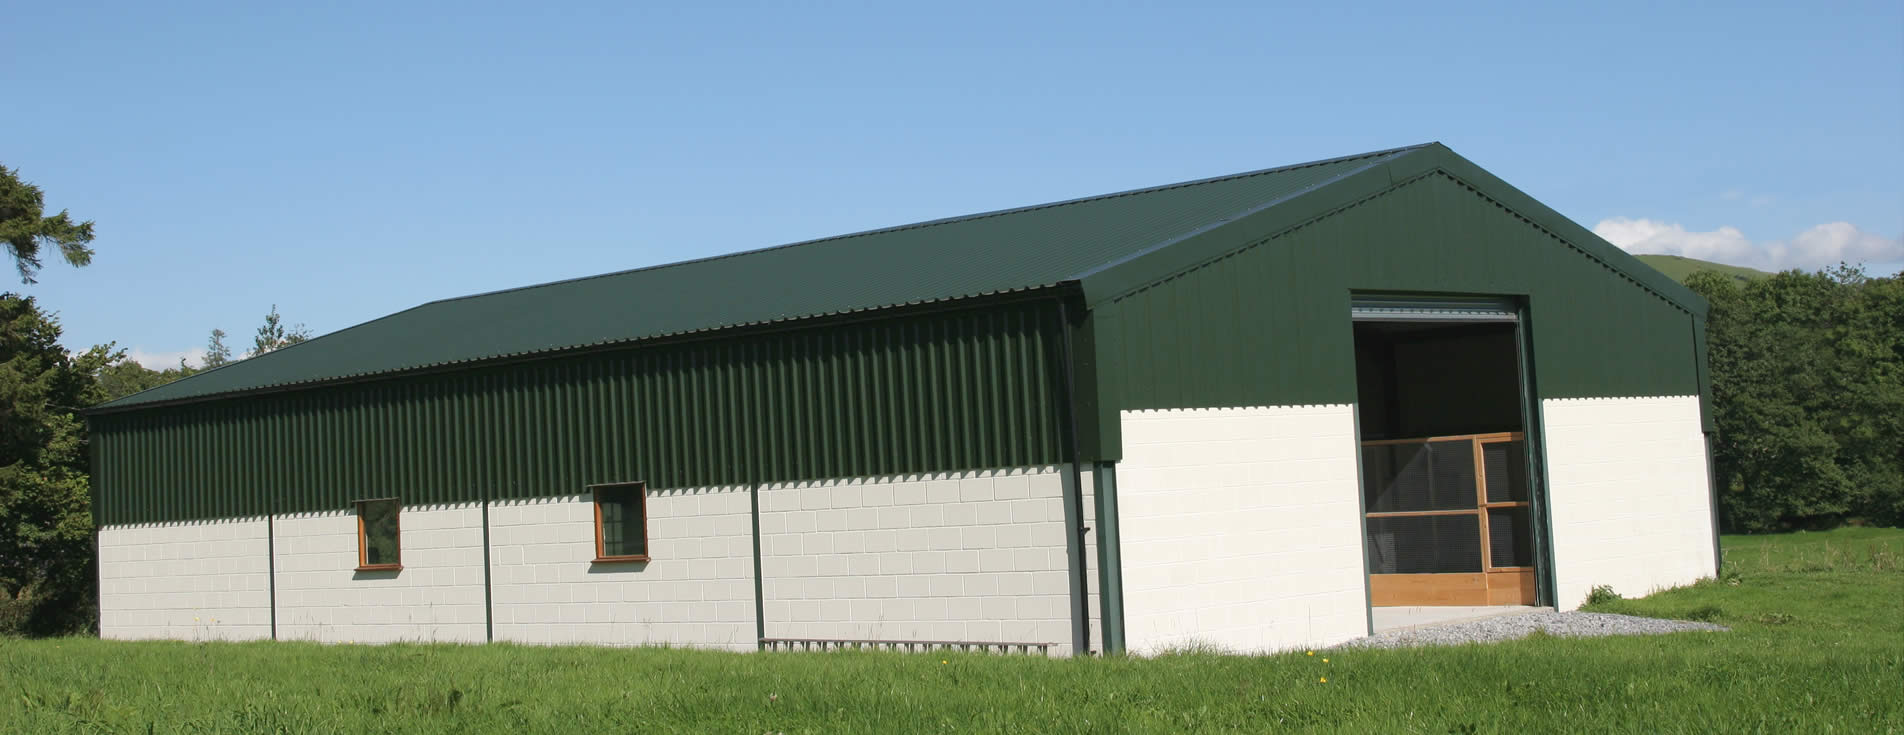 Cladding solutions for agricultural buildings, storage facilities and commercial/industrial buildings